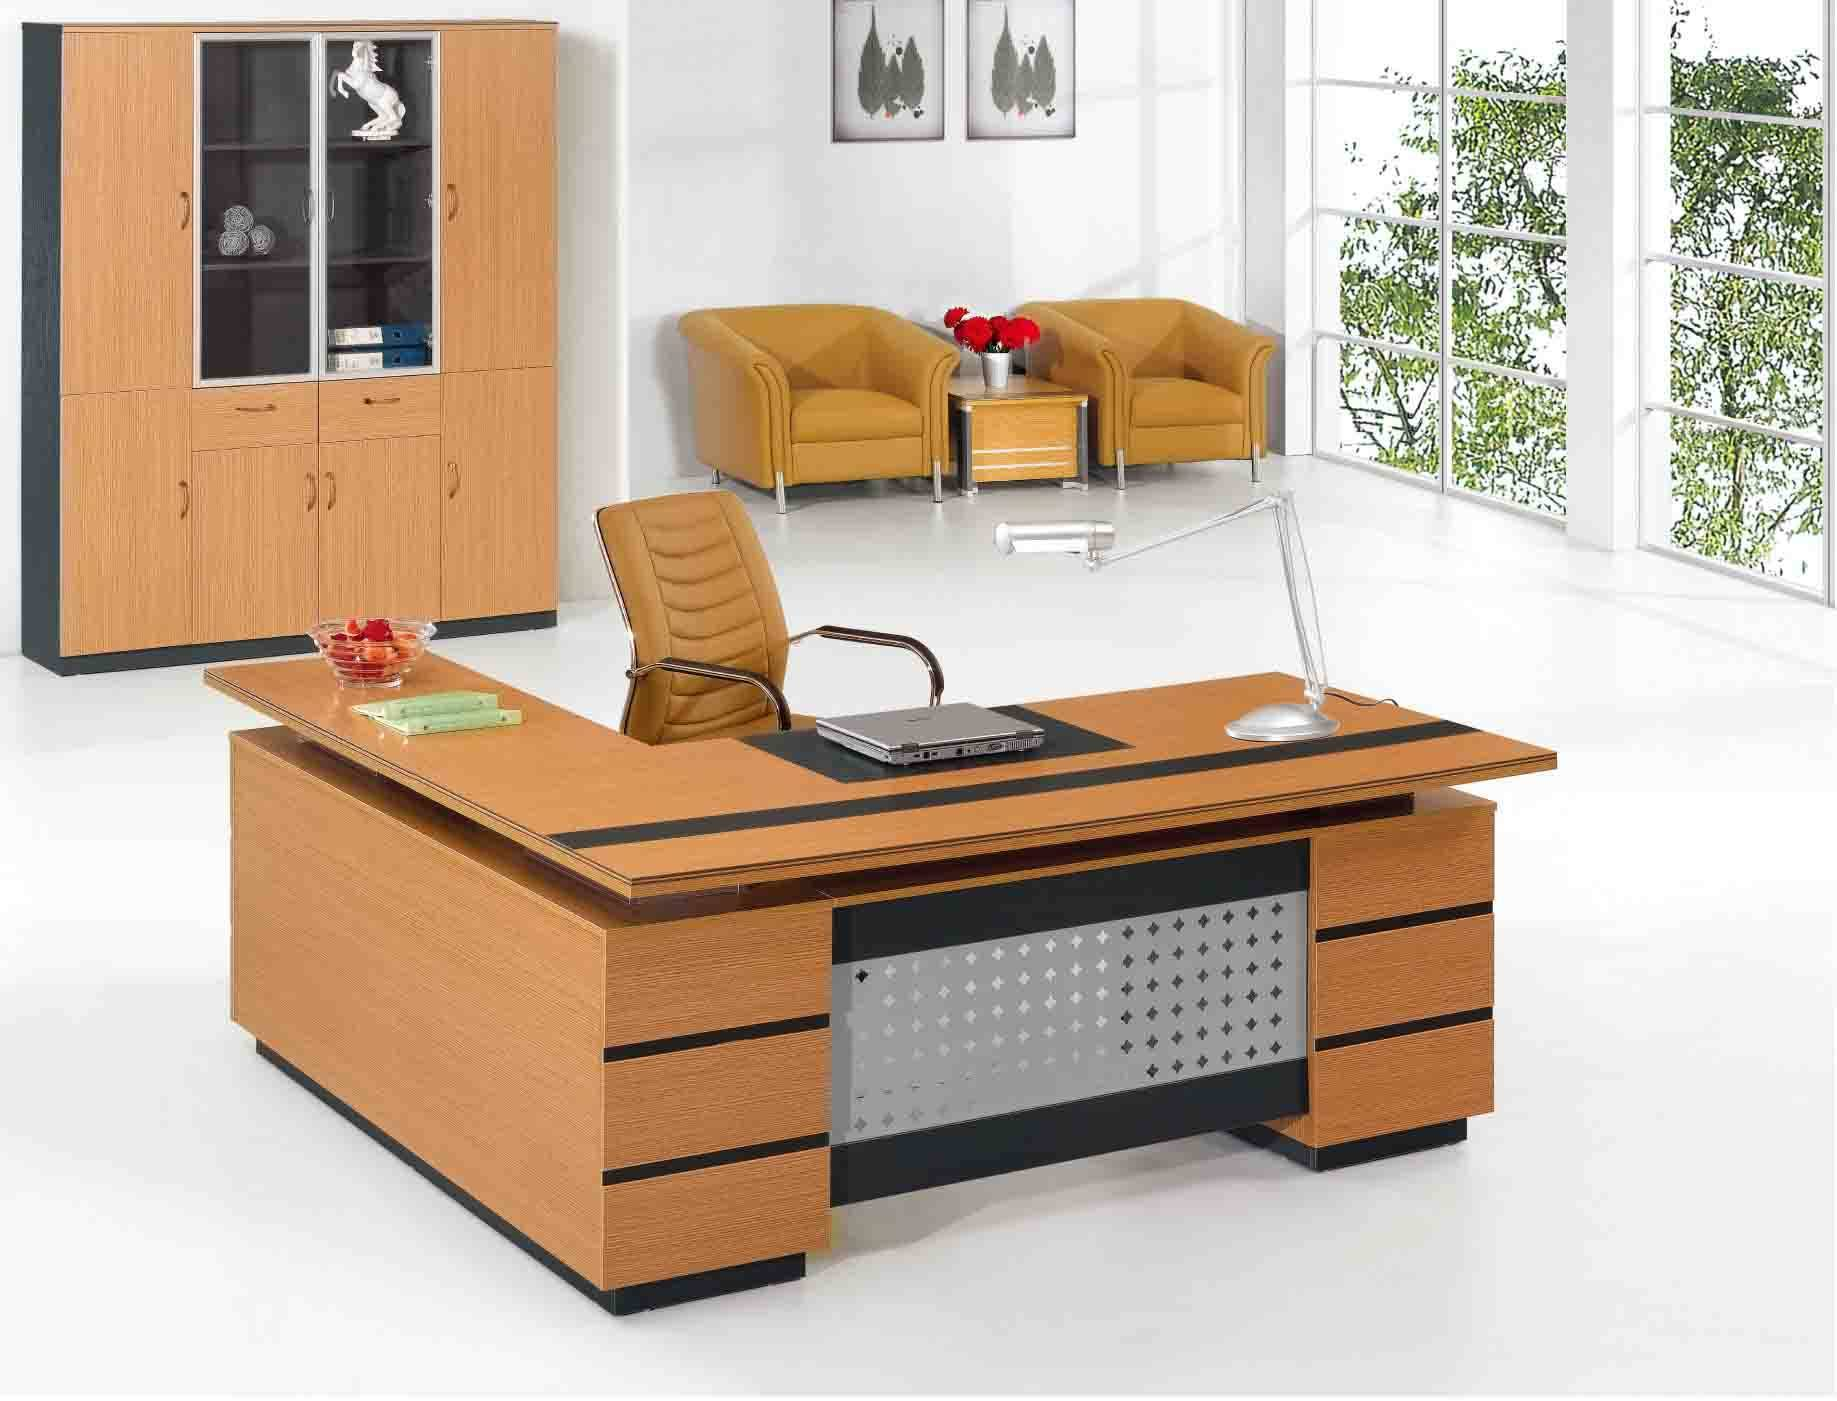 Furniture S In Vijayawada Guntur